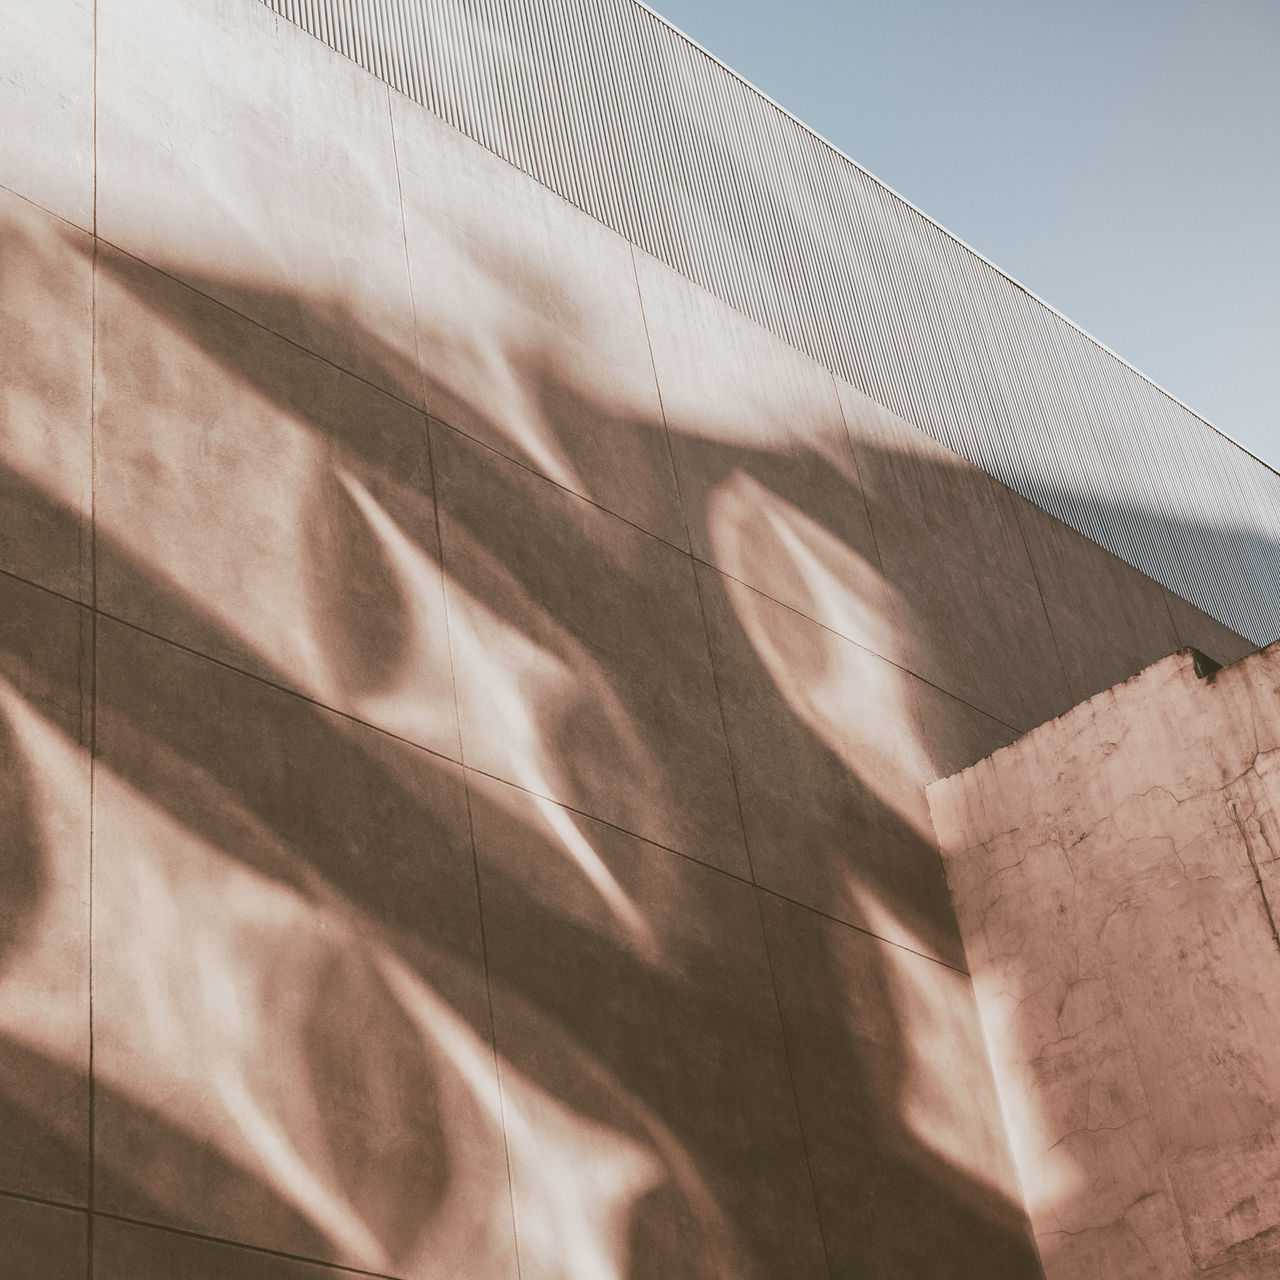 Hatoa Angular Clean Lines Day Geometric Architecture Light Shapes Minimalist No People Outdoors Reflection Sand Sunlight And Shadow Vanishing Point Wall - Building Feature